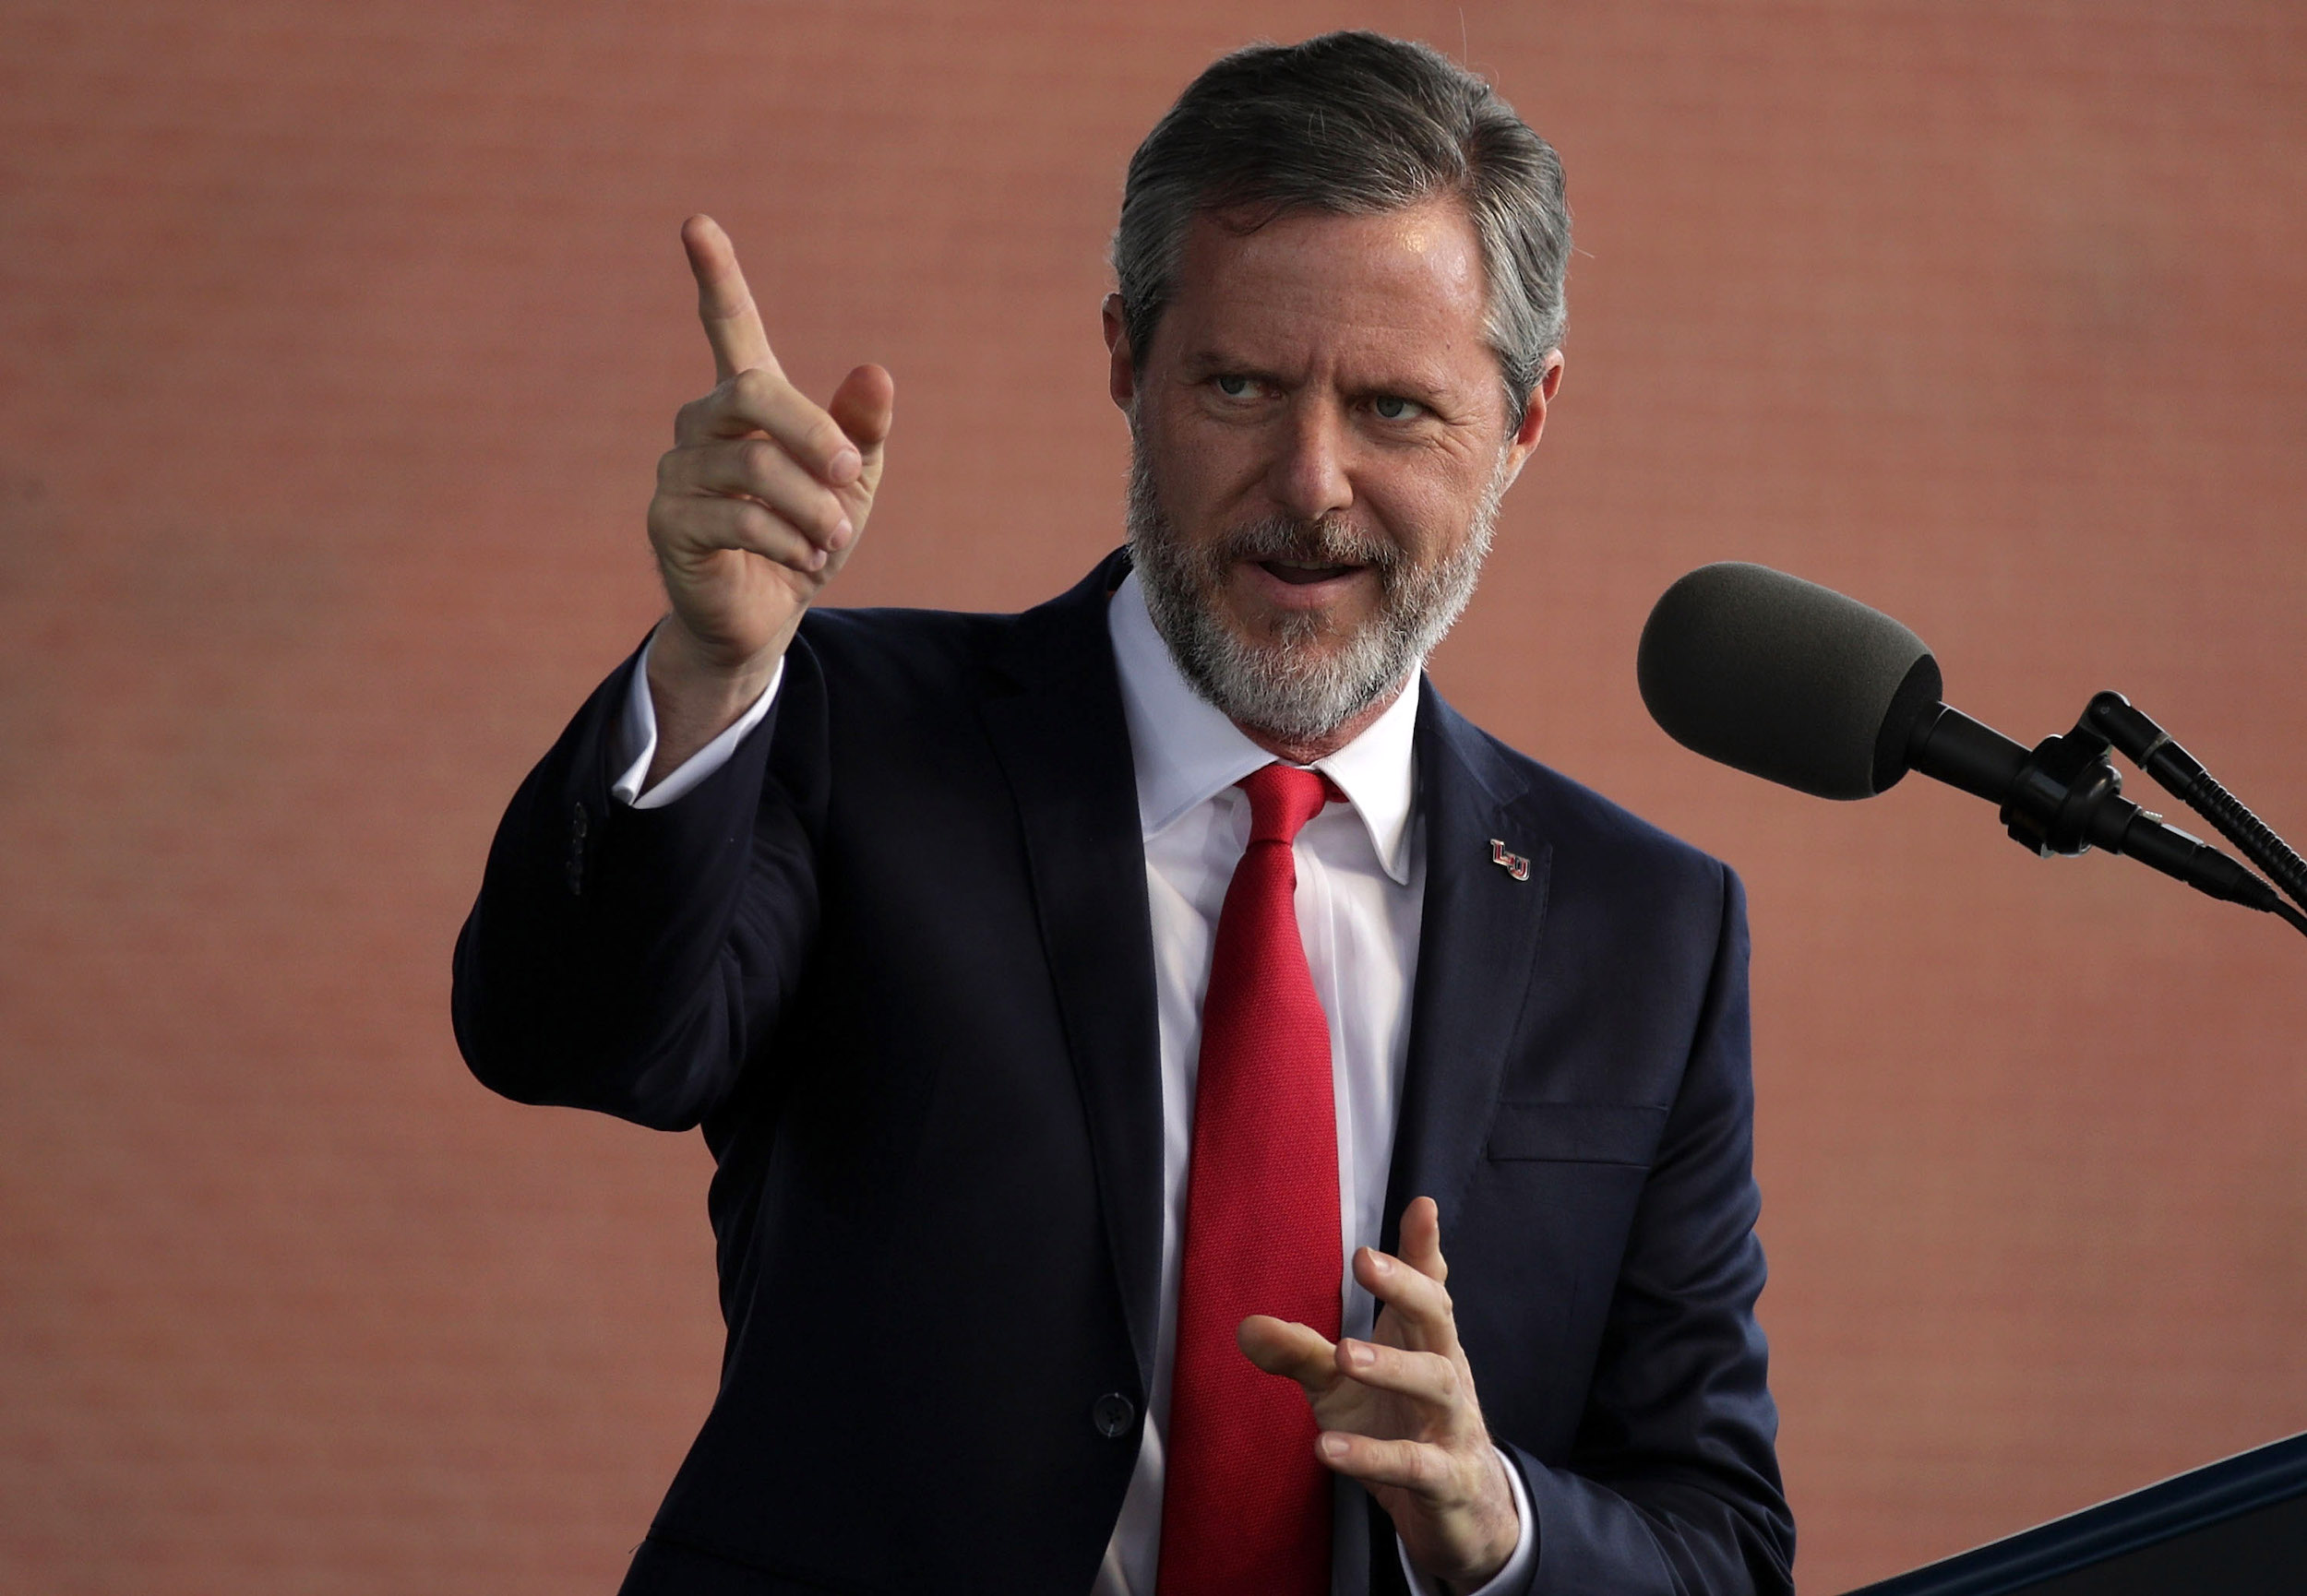 Jerry Falwell Jr. Taking Indefinite Leave of Absence From Liberty University